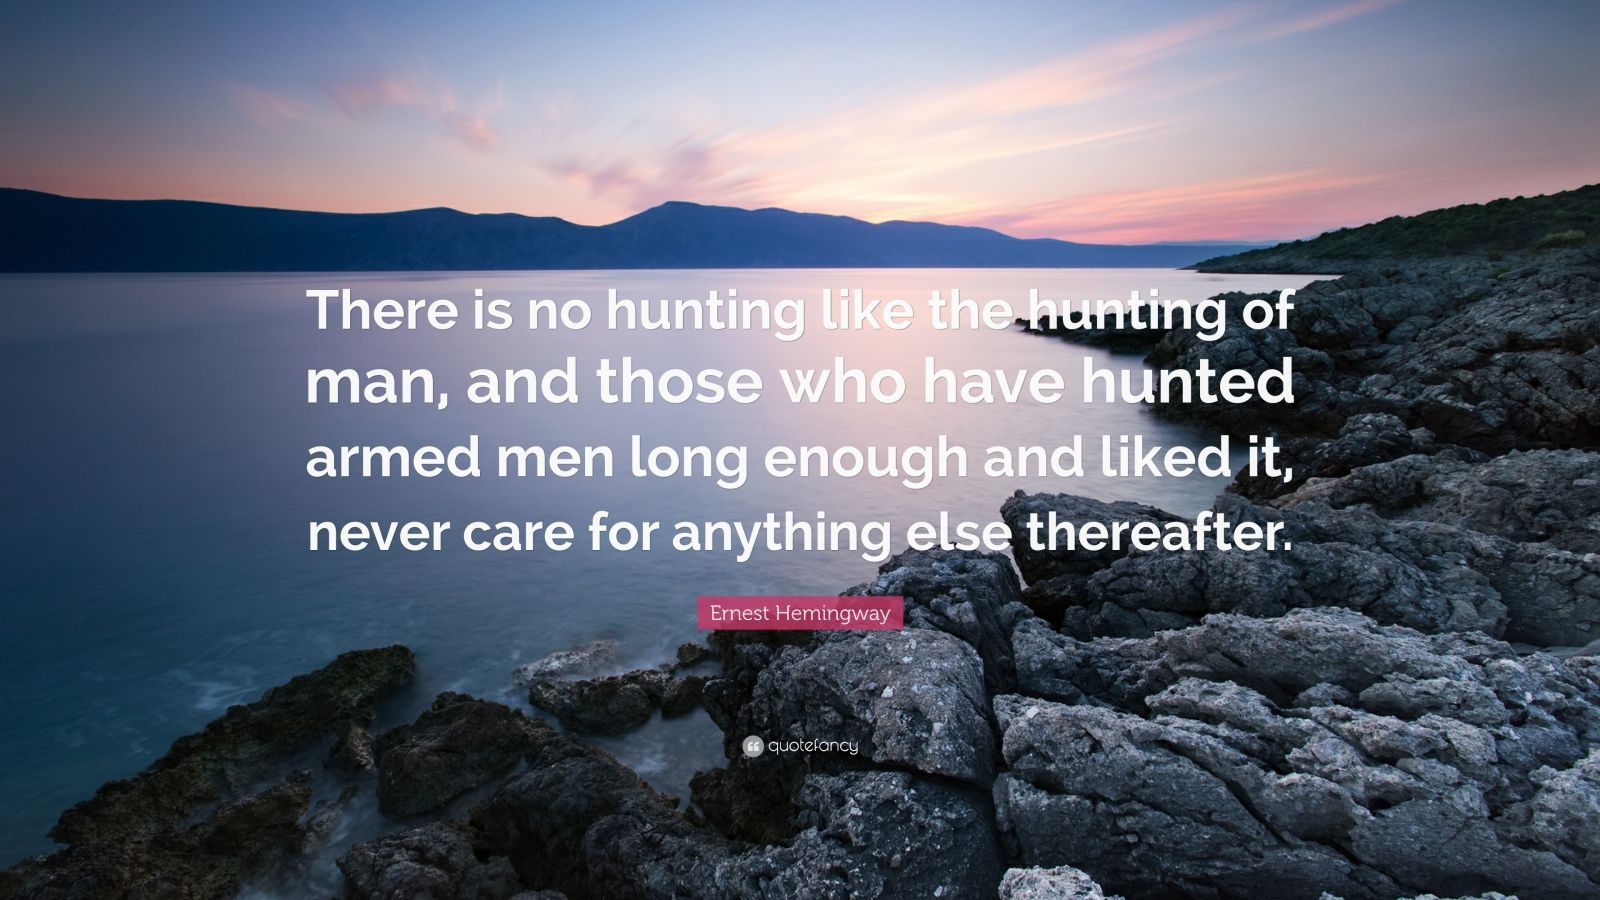 """Ernest Hemingway Quote: """"There is no hunting like the hunting of man, and those who have hunted armed men long enough and liked it, never care for anything else thereafter."""""""